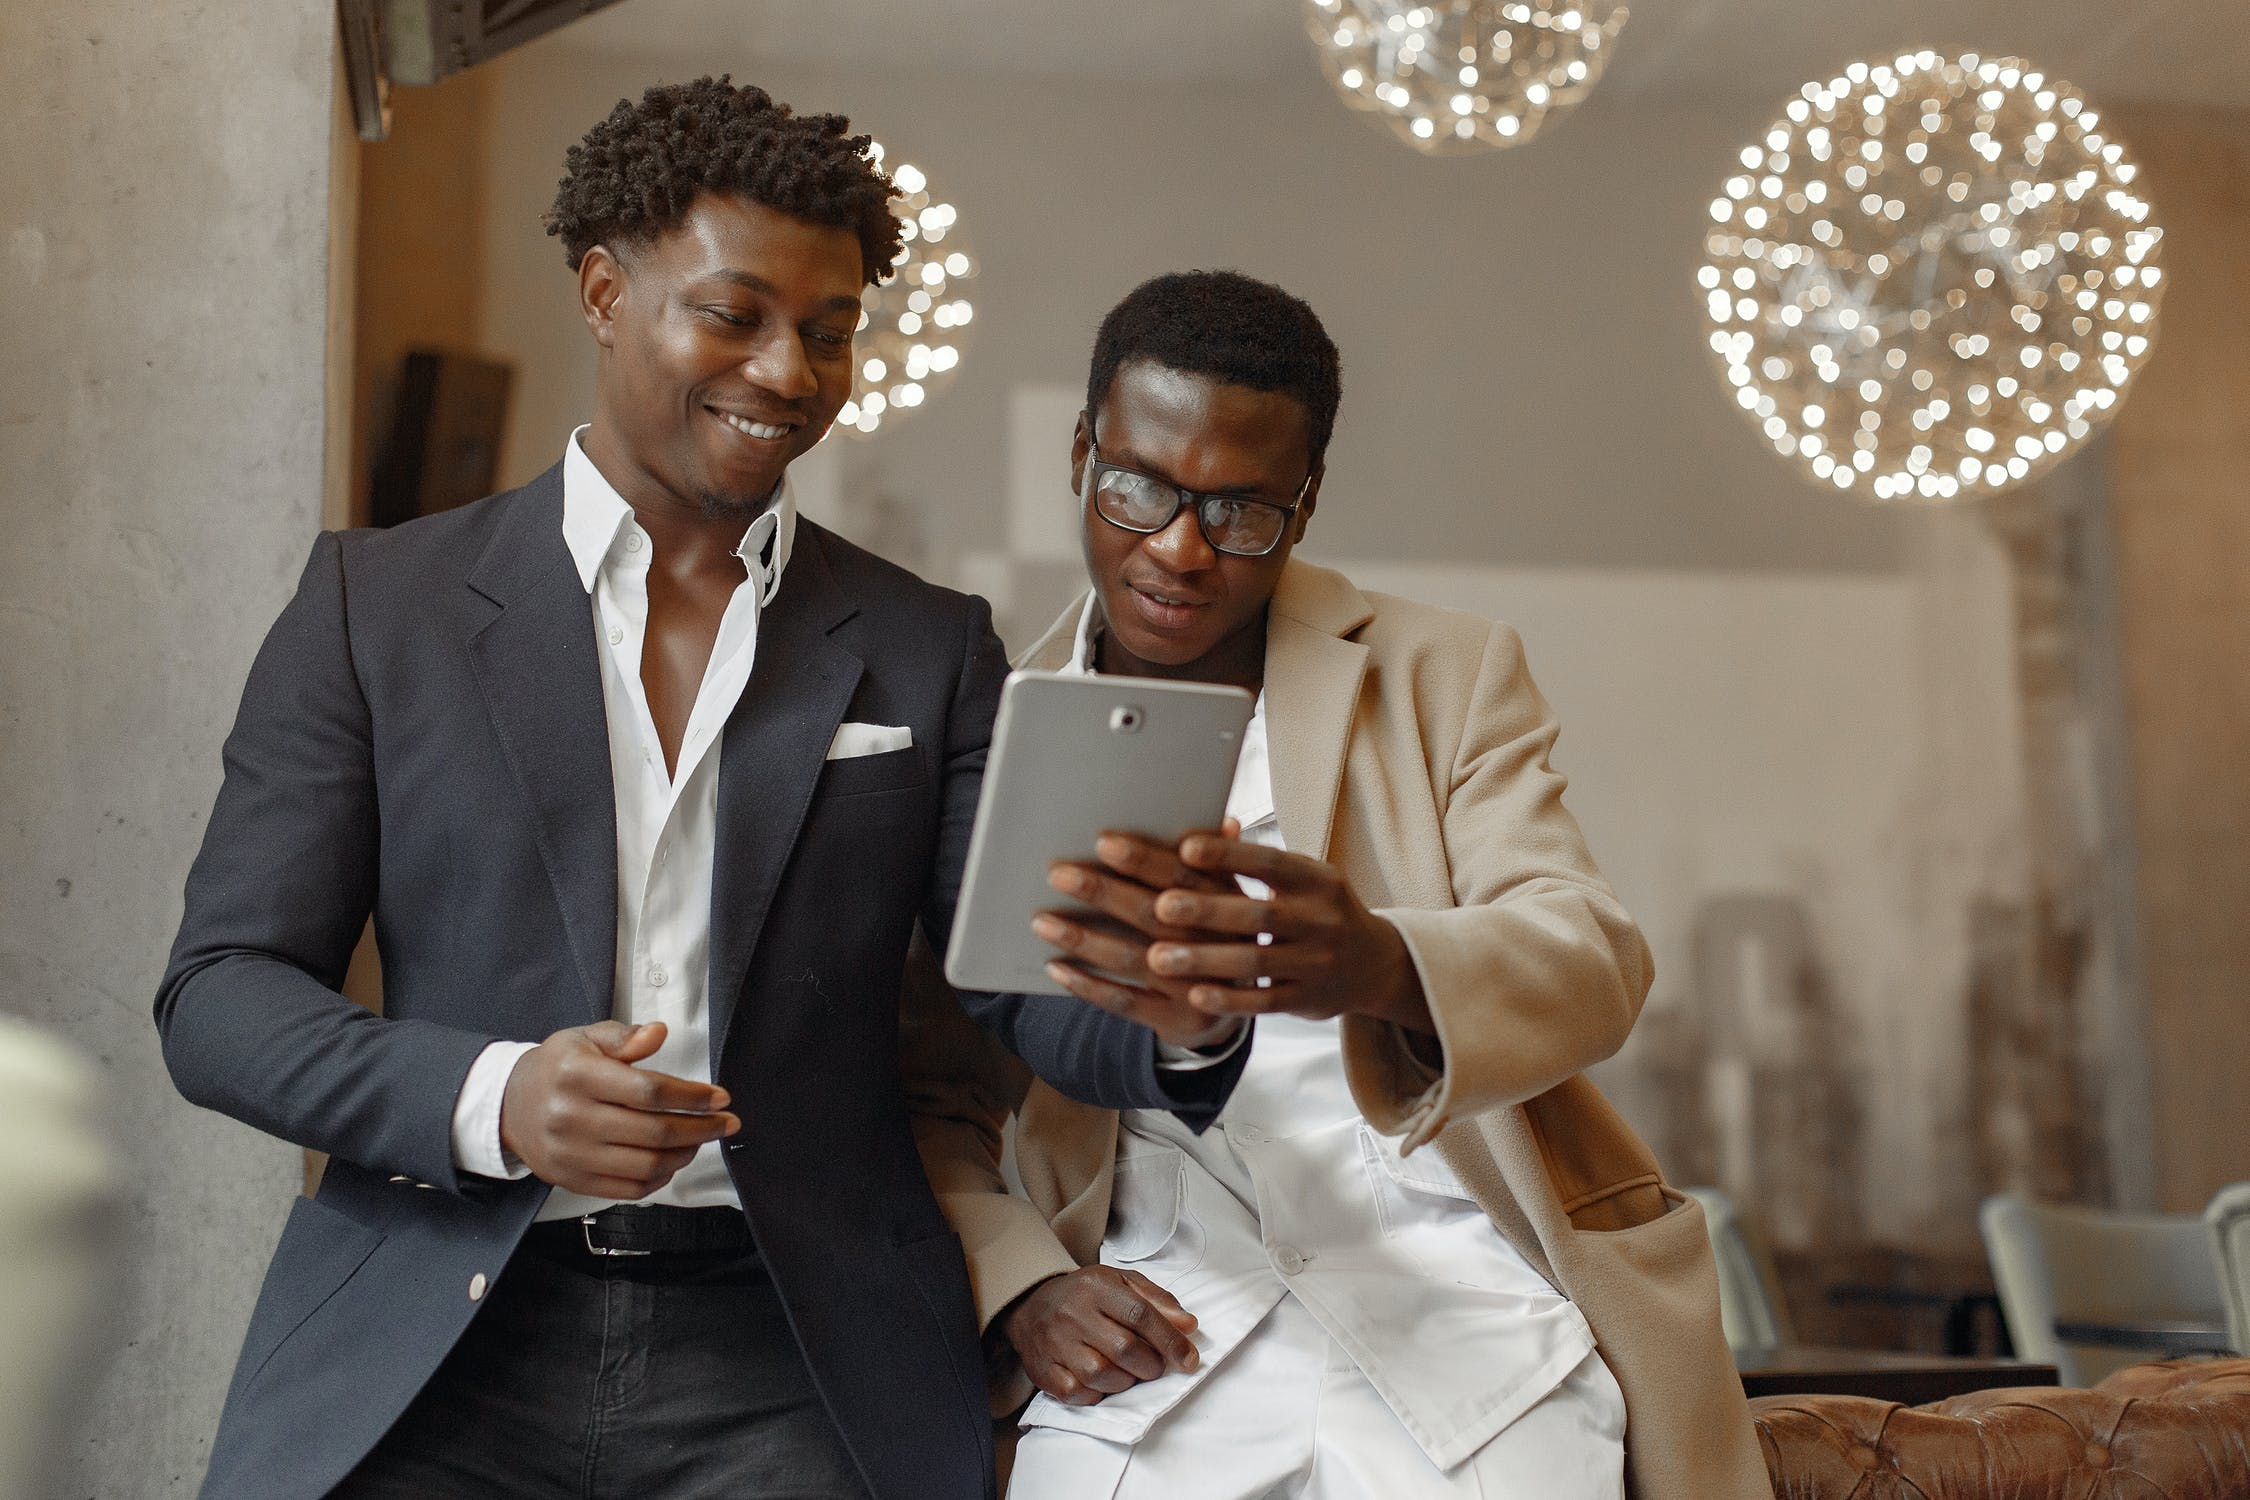 Two men in suits looking at a tablet